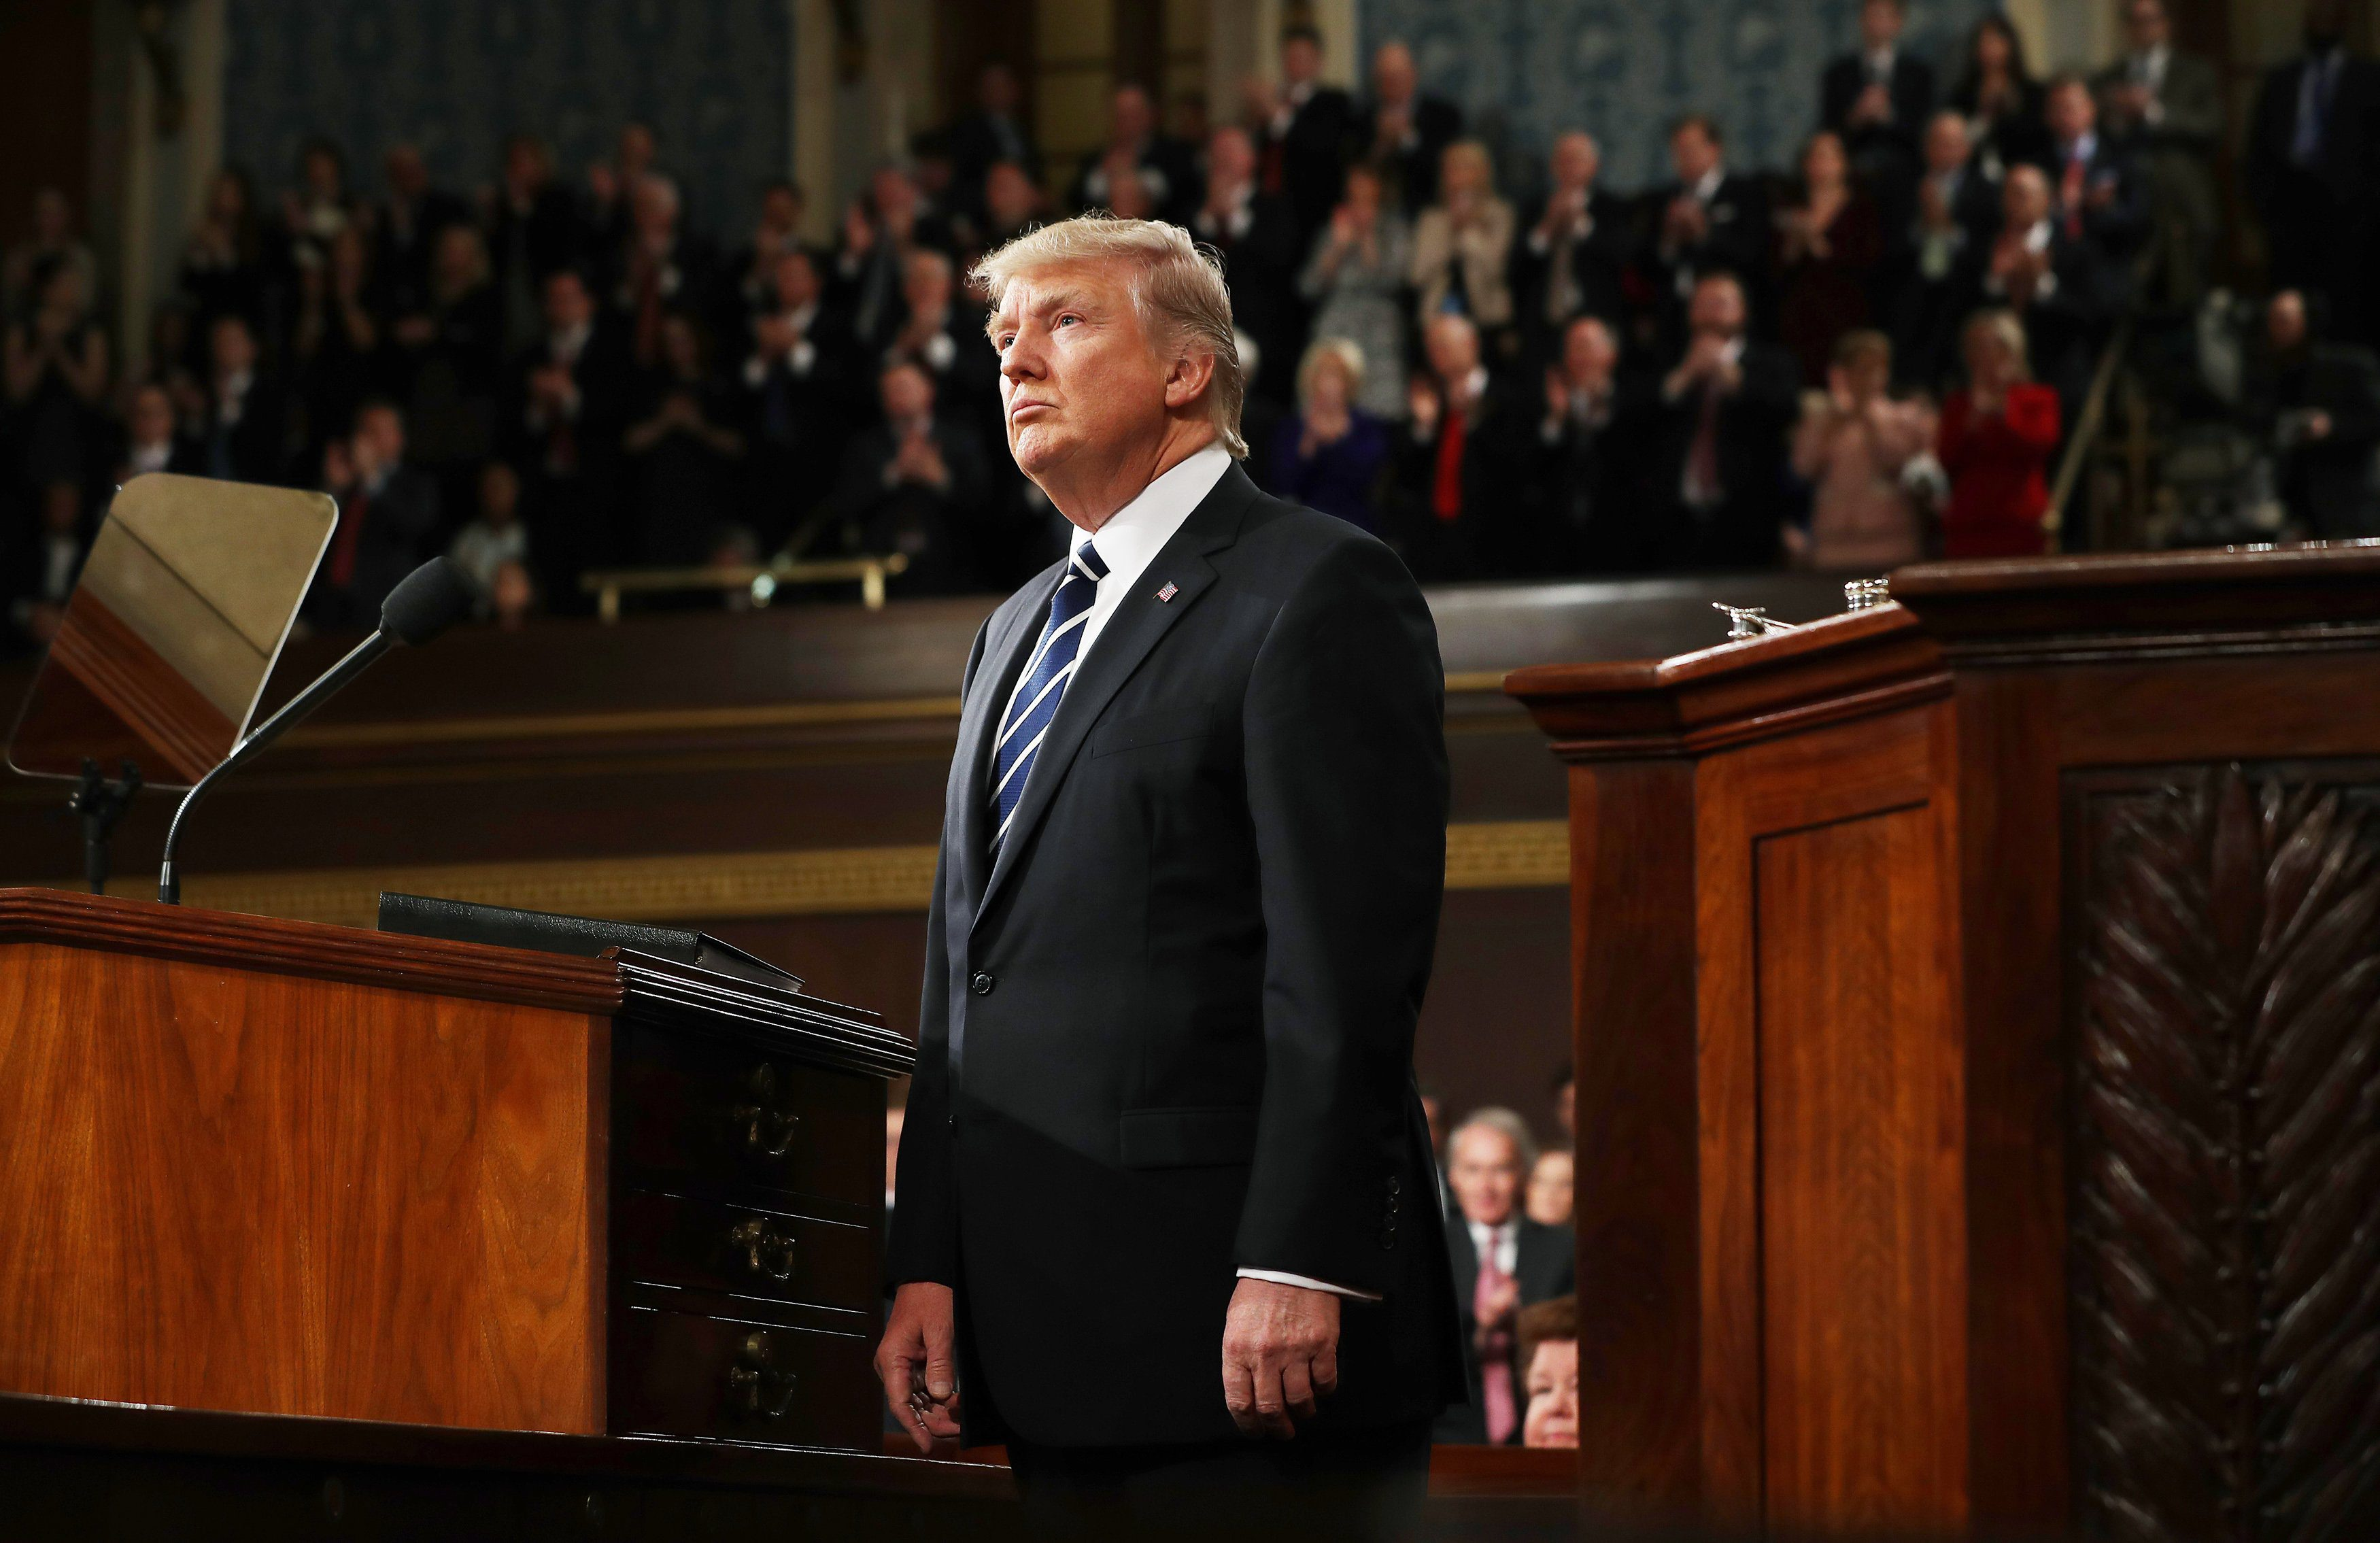 U.S. President Donald Trump delivers his first address to a joint session of Congress from the floor of the House of Representatives iin Washington, U.S., February 28, 2017.  REUTERS/Jim Lo Scalzo/Pool